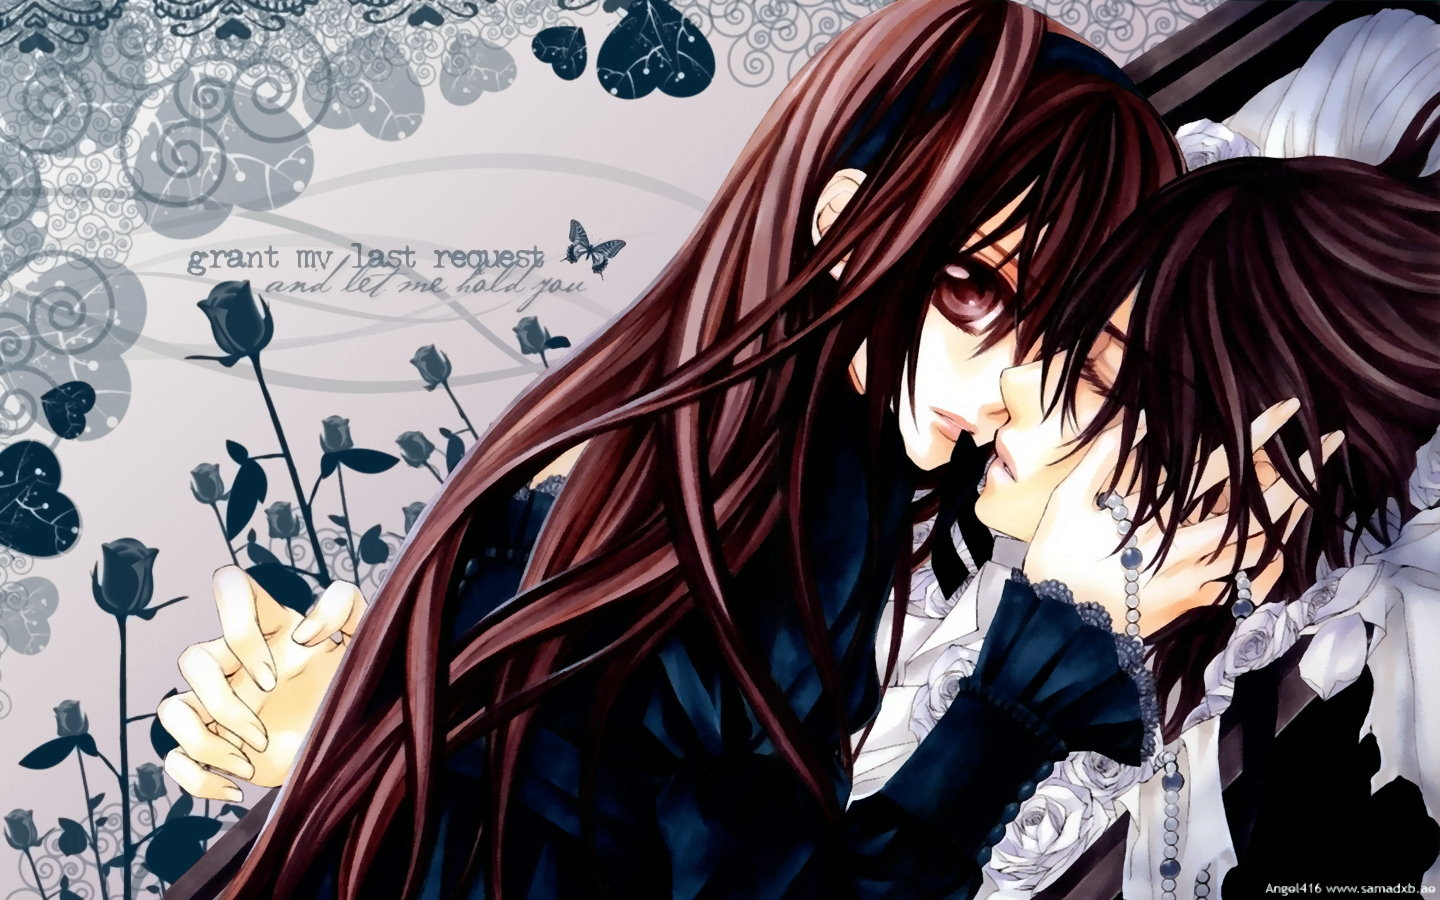 vampire knight Wallpaper and Background Image 1440x900 ID:451802